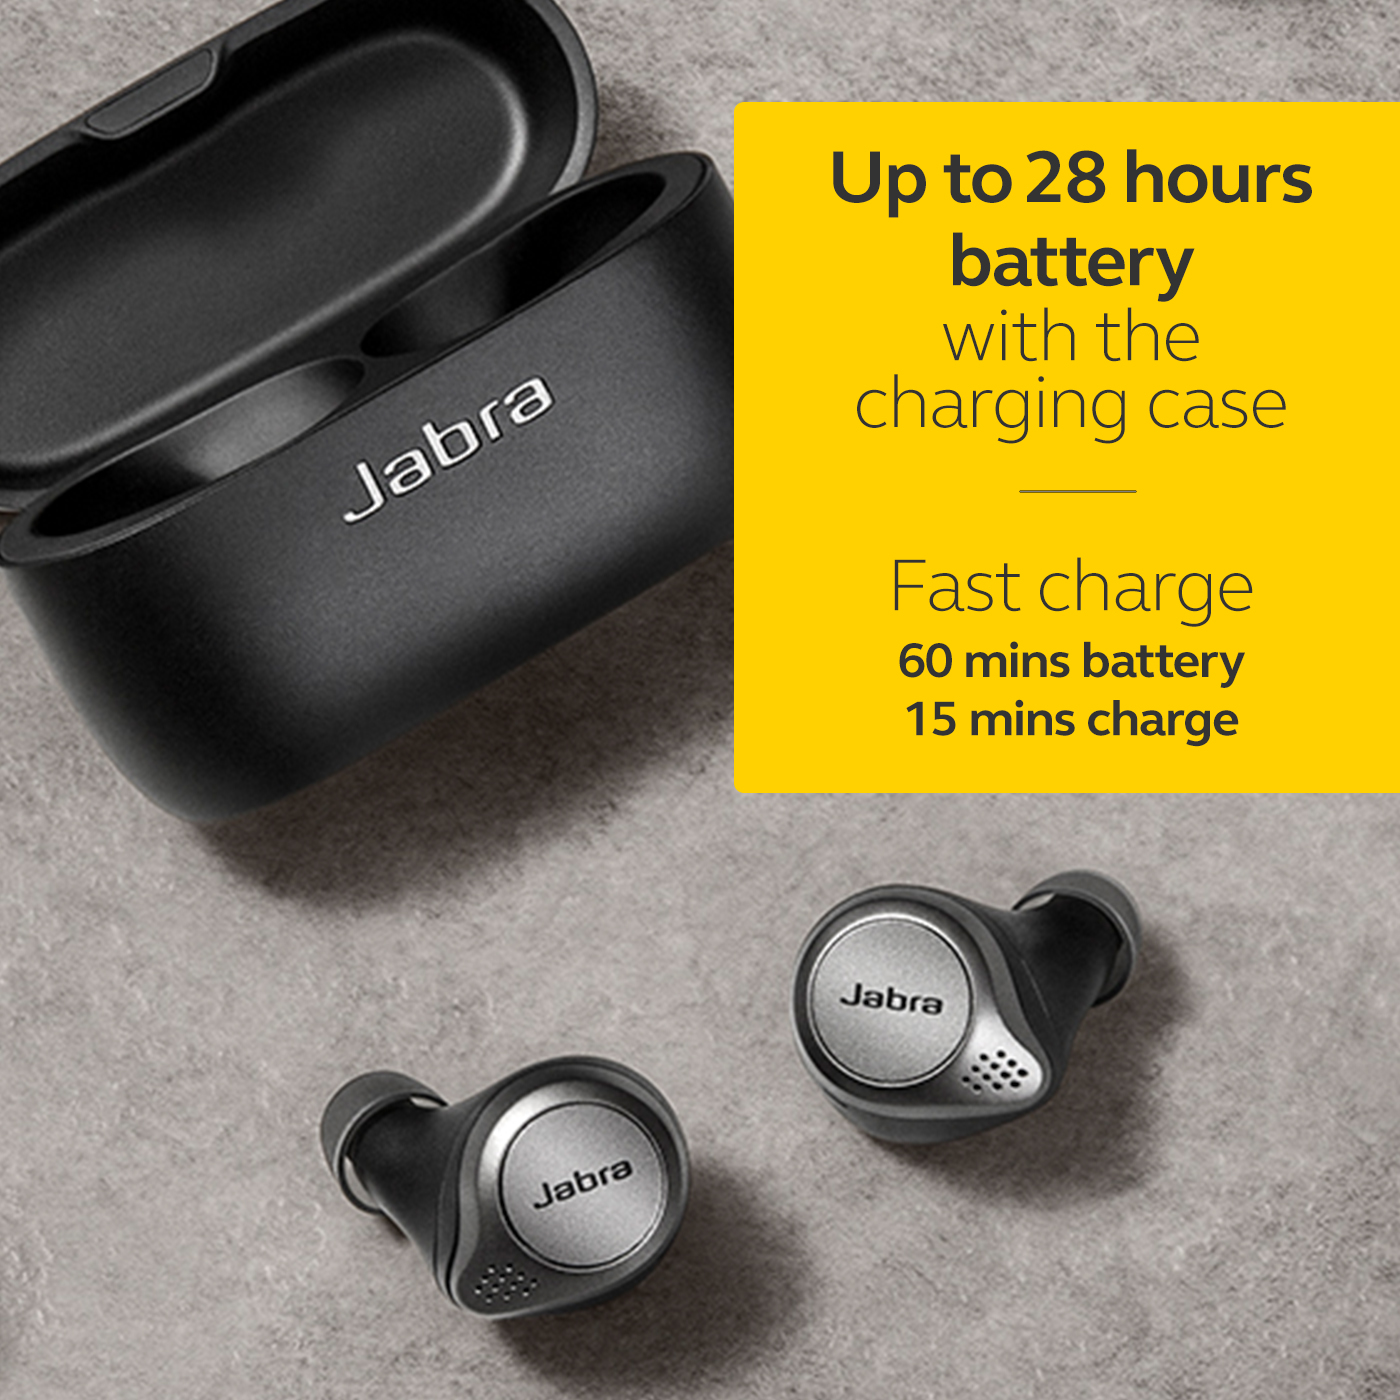 Jabra-Elite-75t-Voice-Assistant-Enabled-True-Wireless-earbuds-with-Charging-Case thumbnail 12